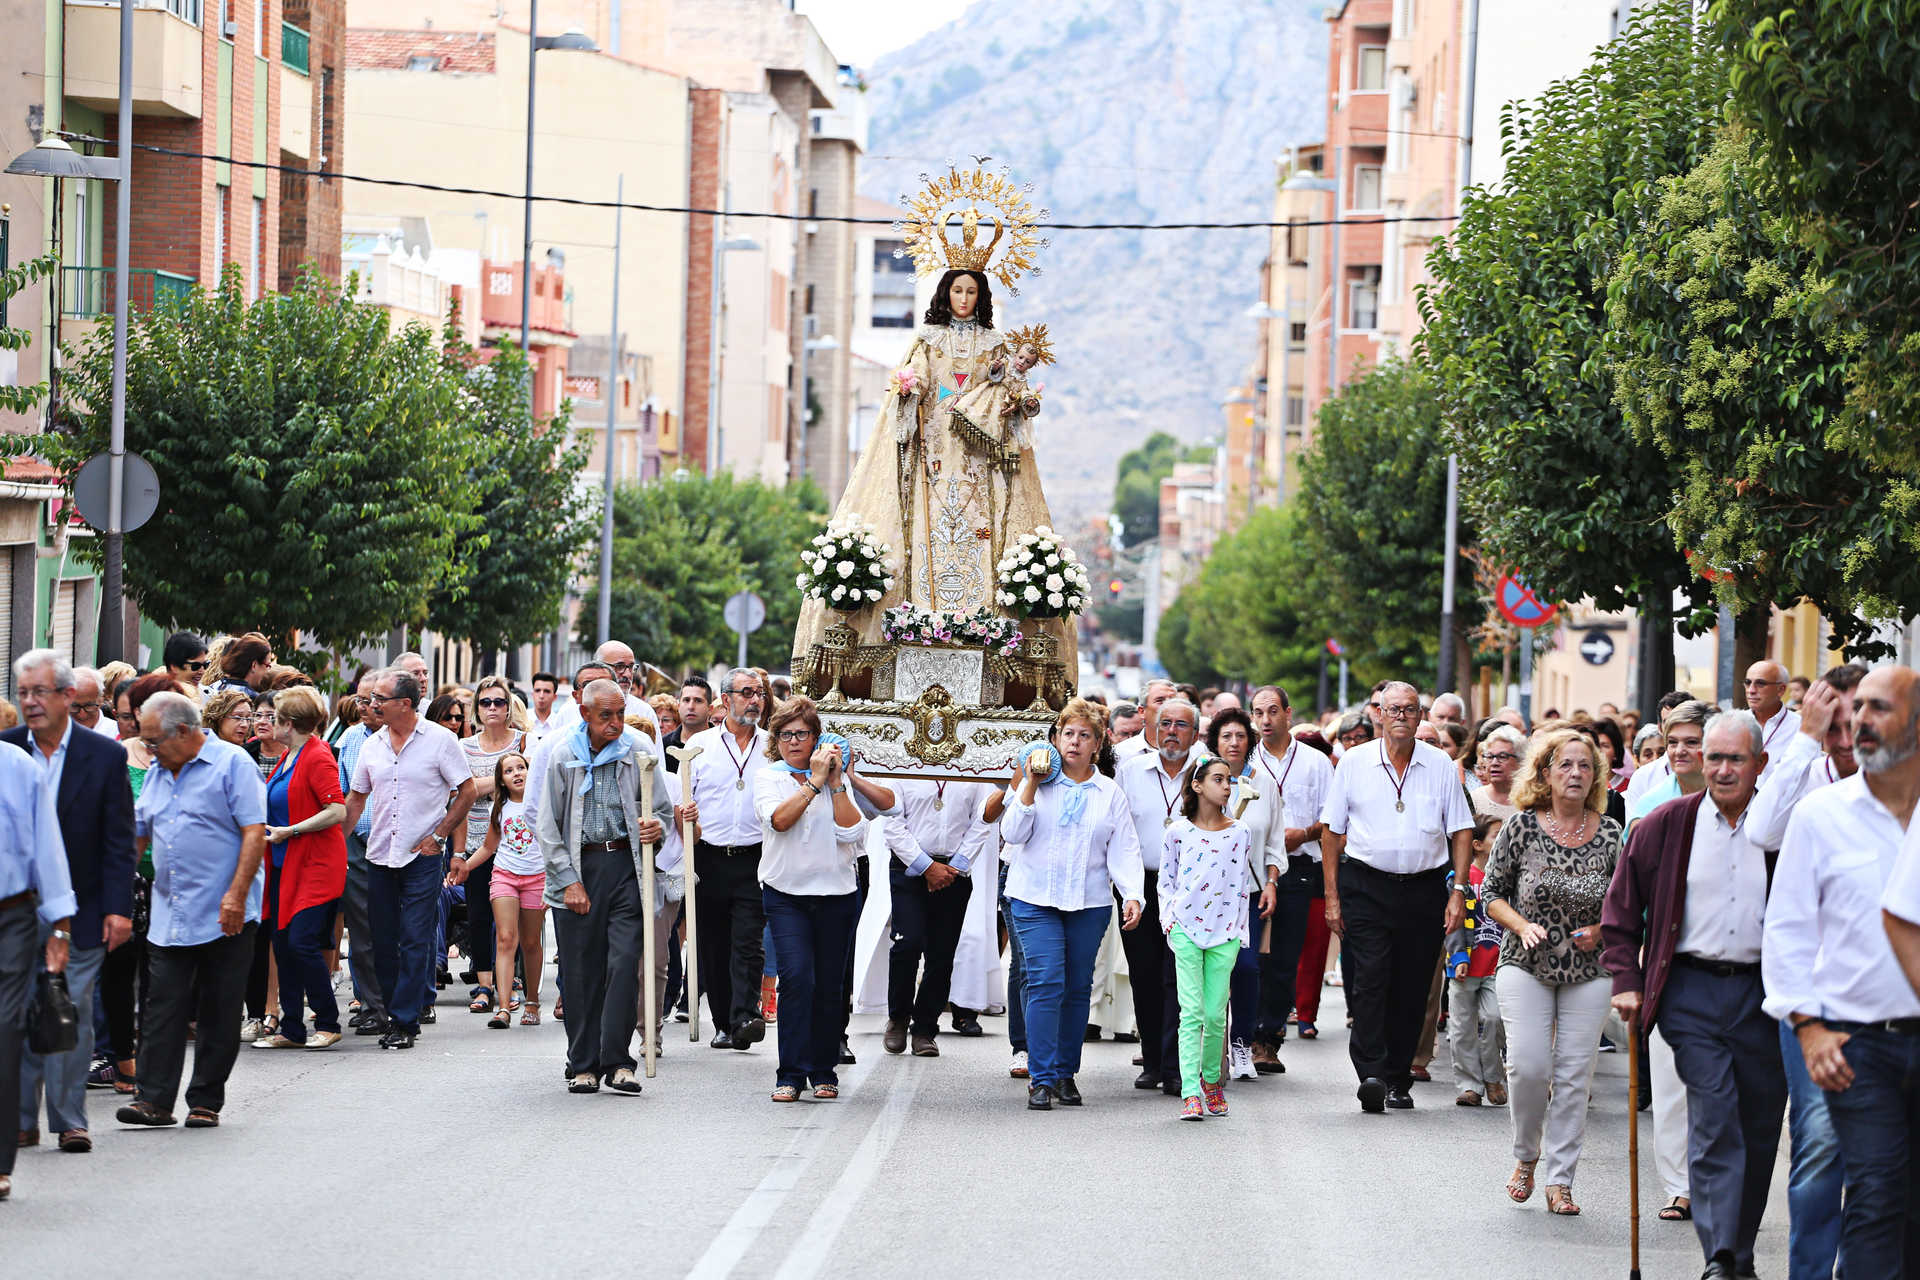 Fiesta Patronal en Honor de la Virgen del Remedio